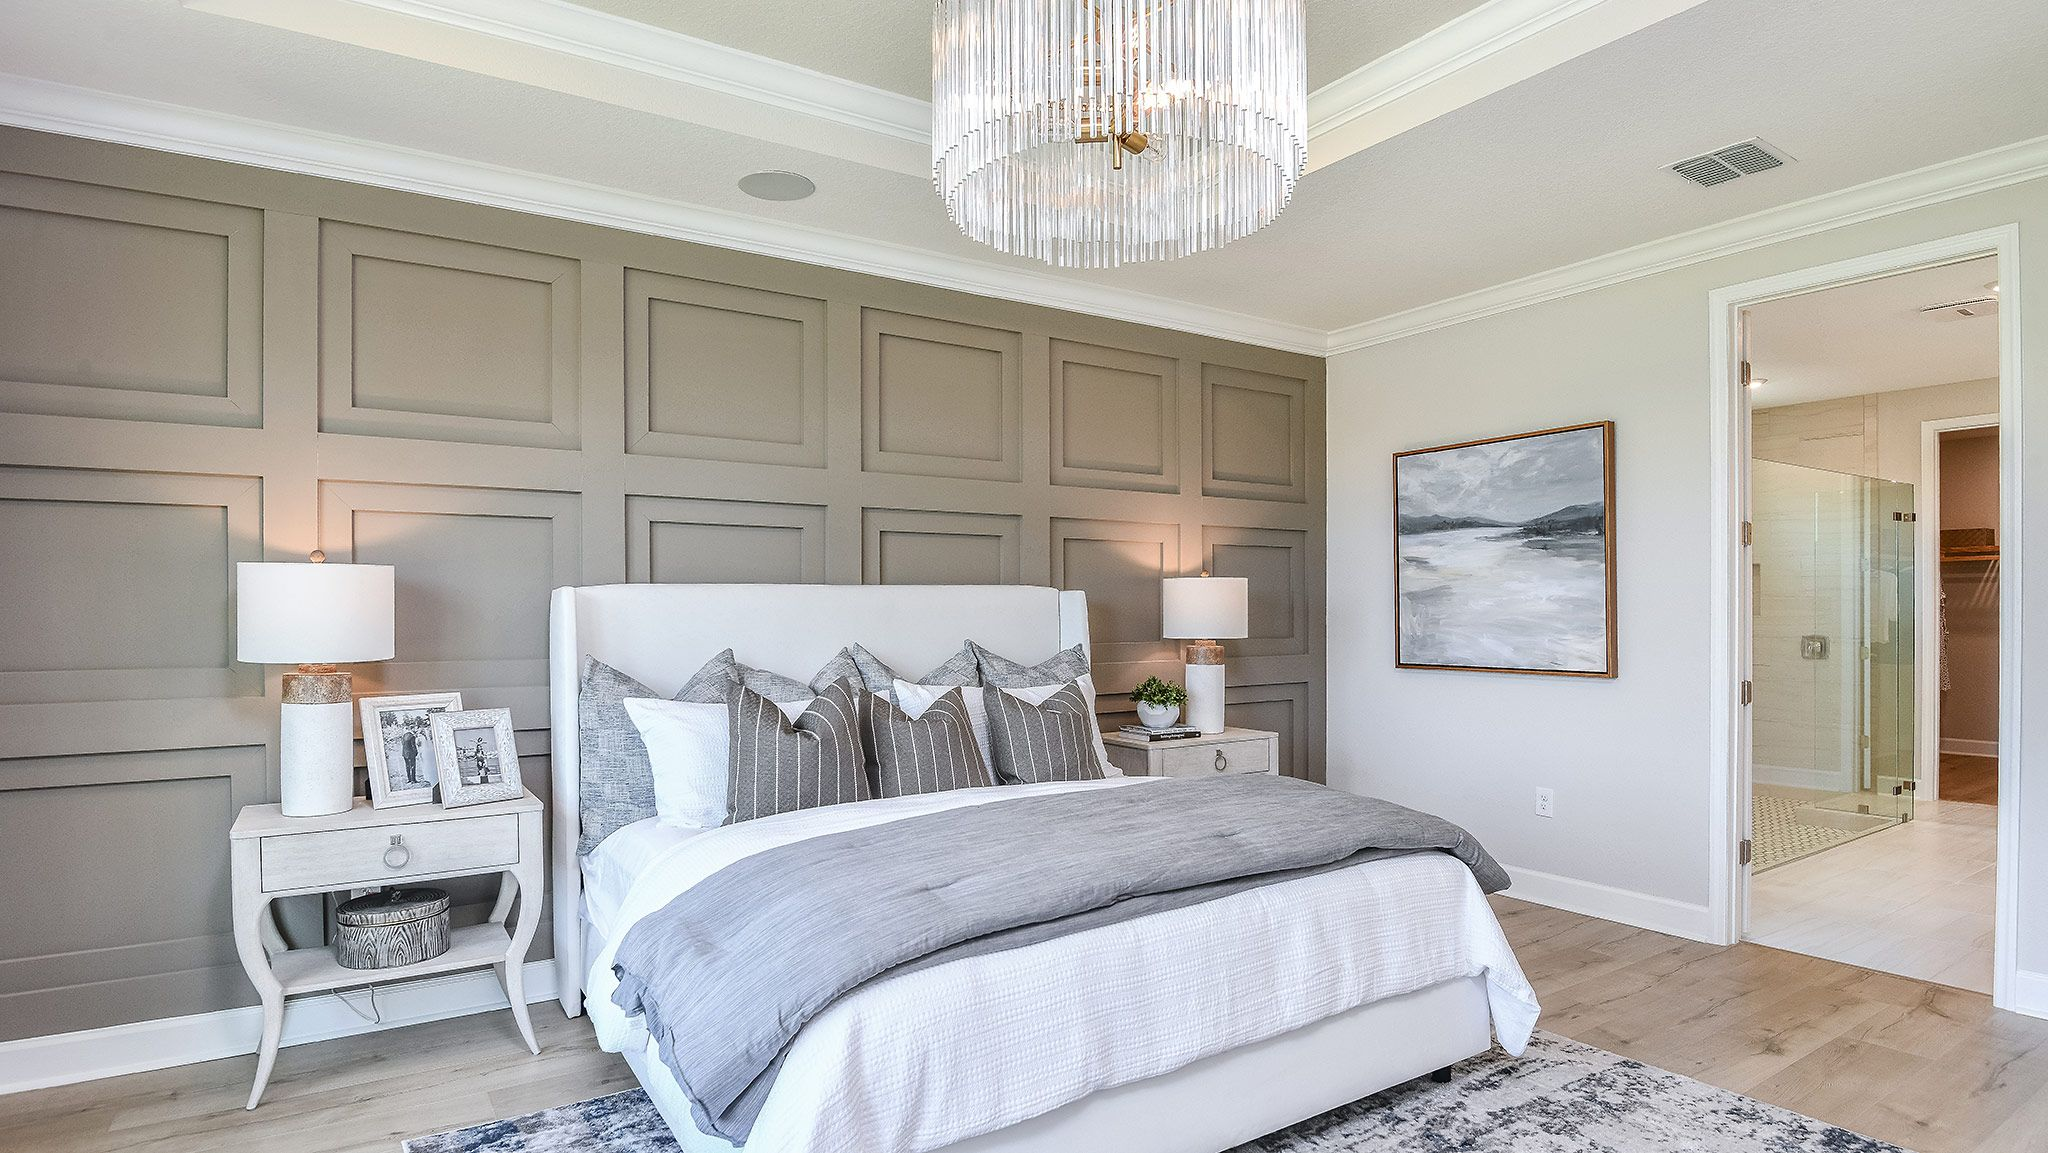 Bedroom featured in the Sanibel By Taylor Morrison in Jacksonville-St. Augustine, FL